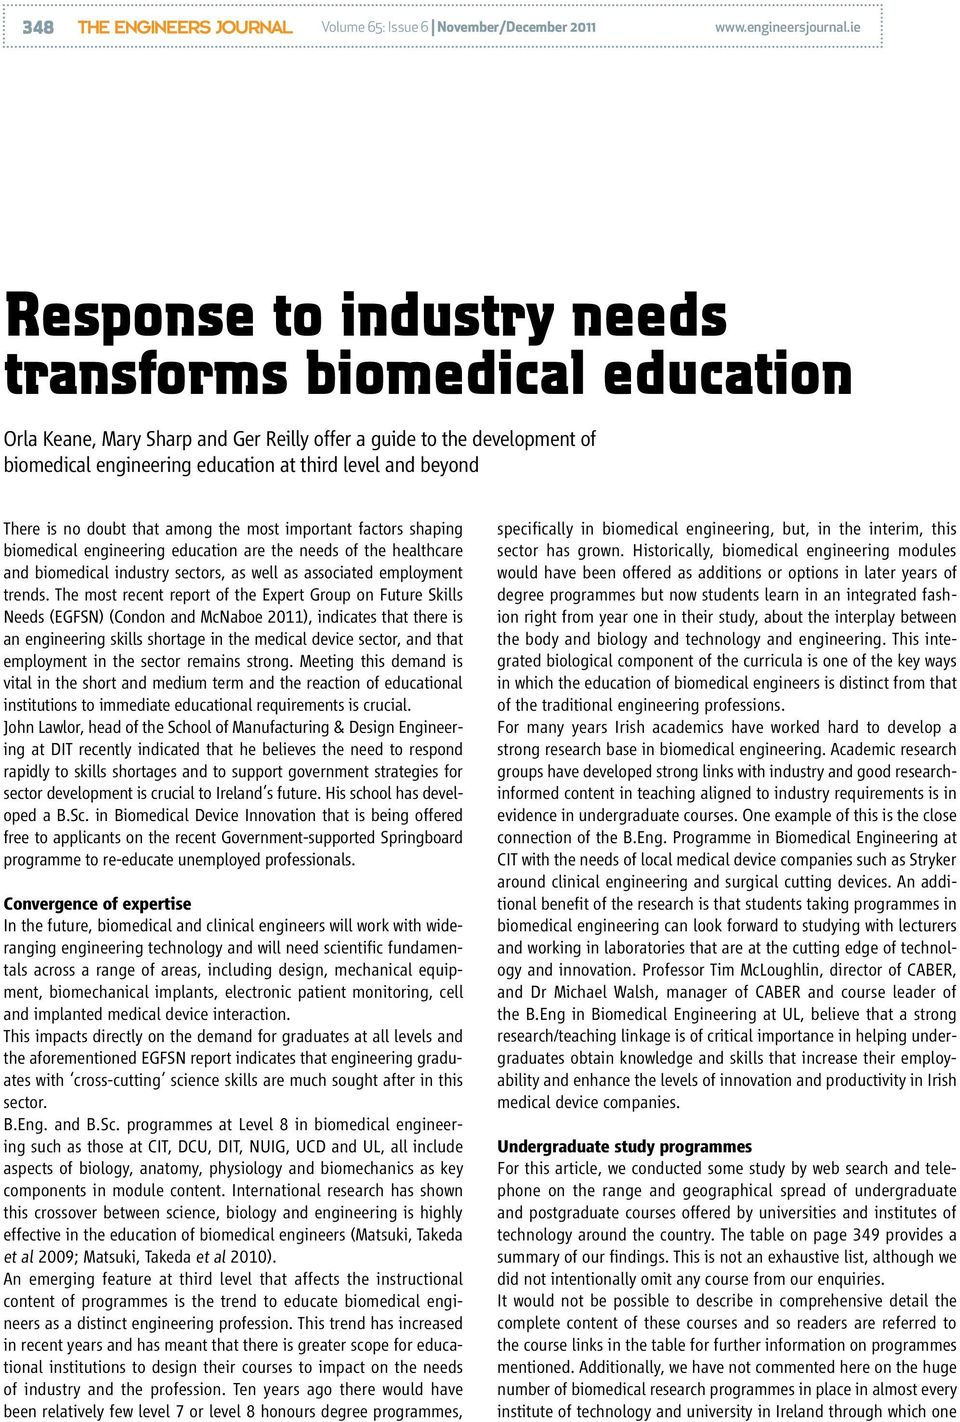 There is no doubt that among the most important factors shaping biomedical engineering education are the needs of the healthcare and biomedical industry sectors, as well as associated employment